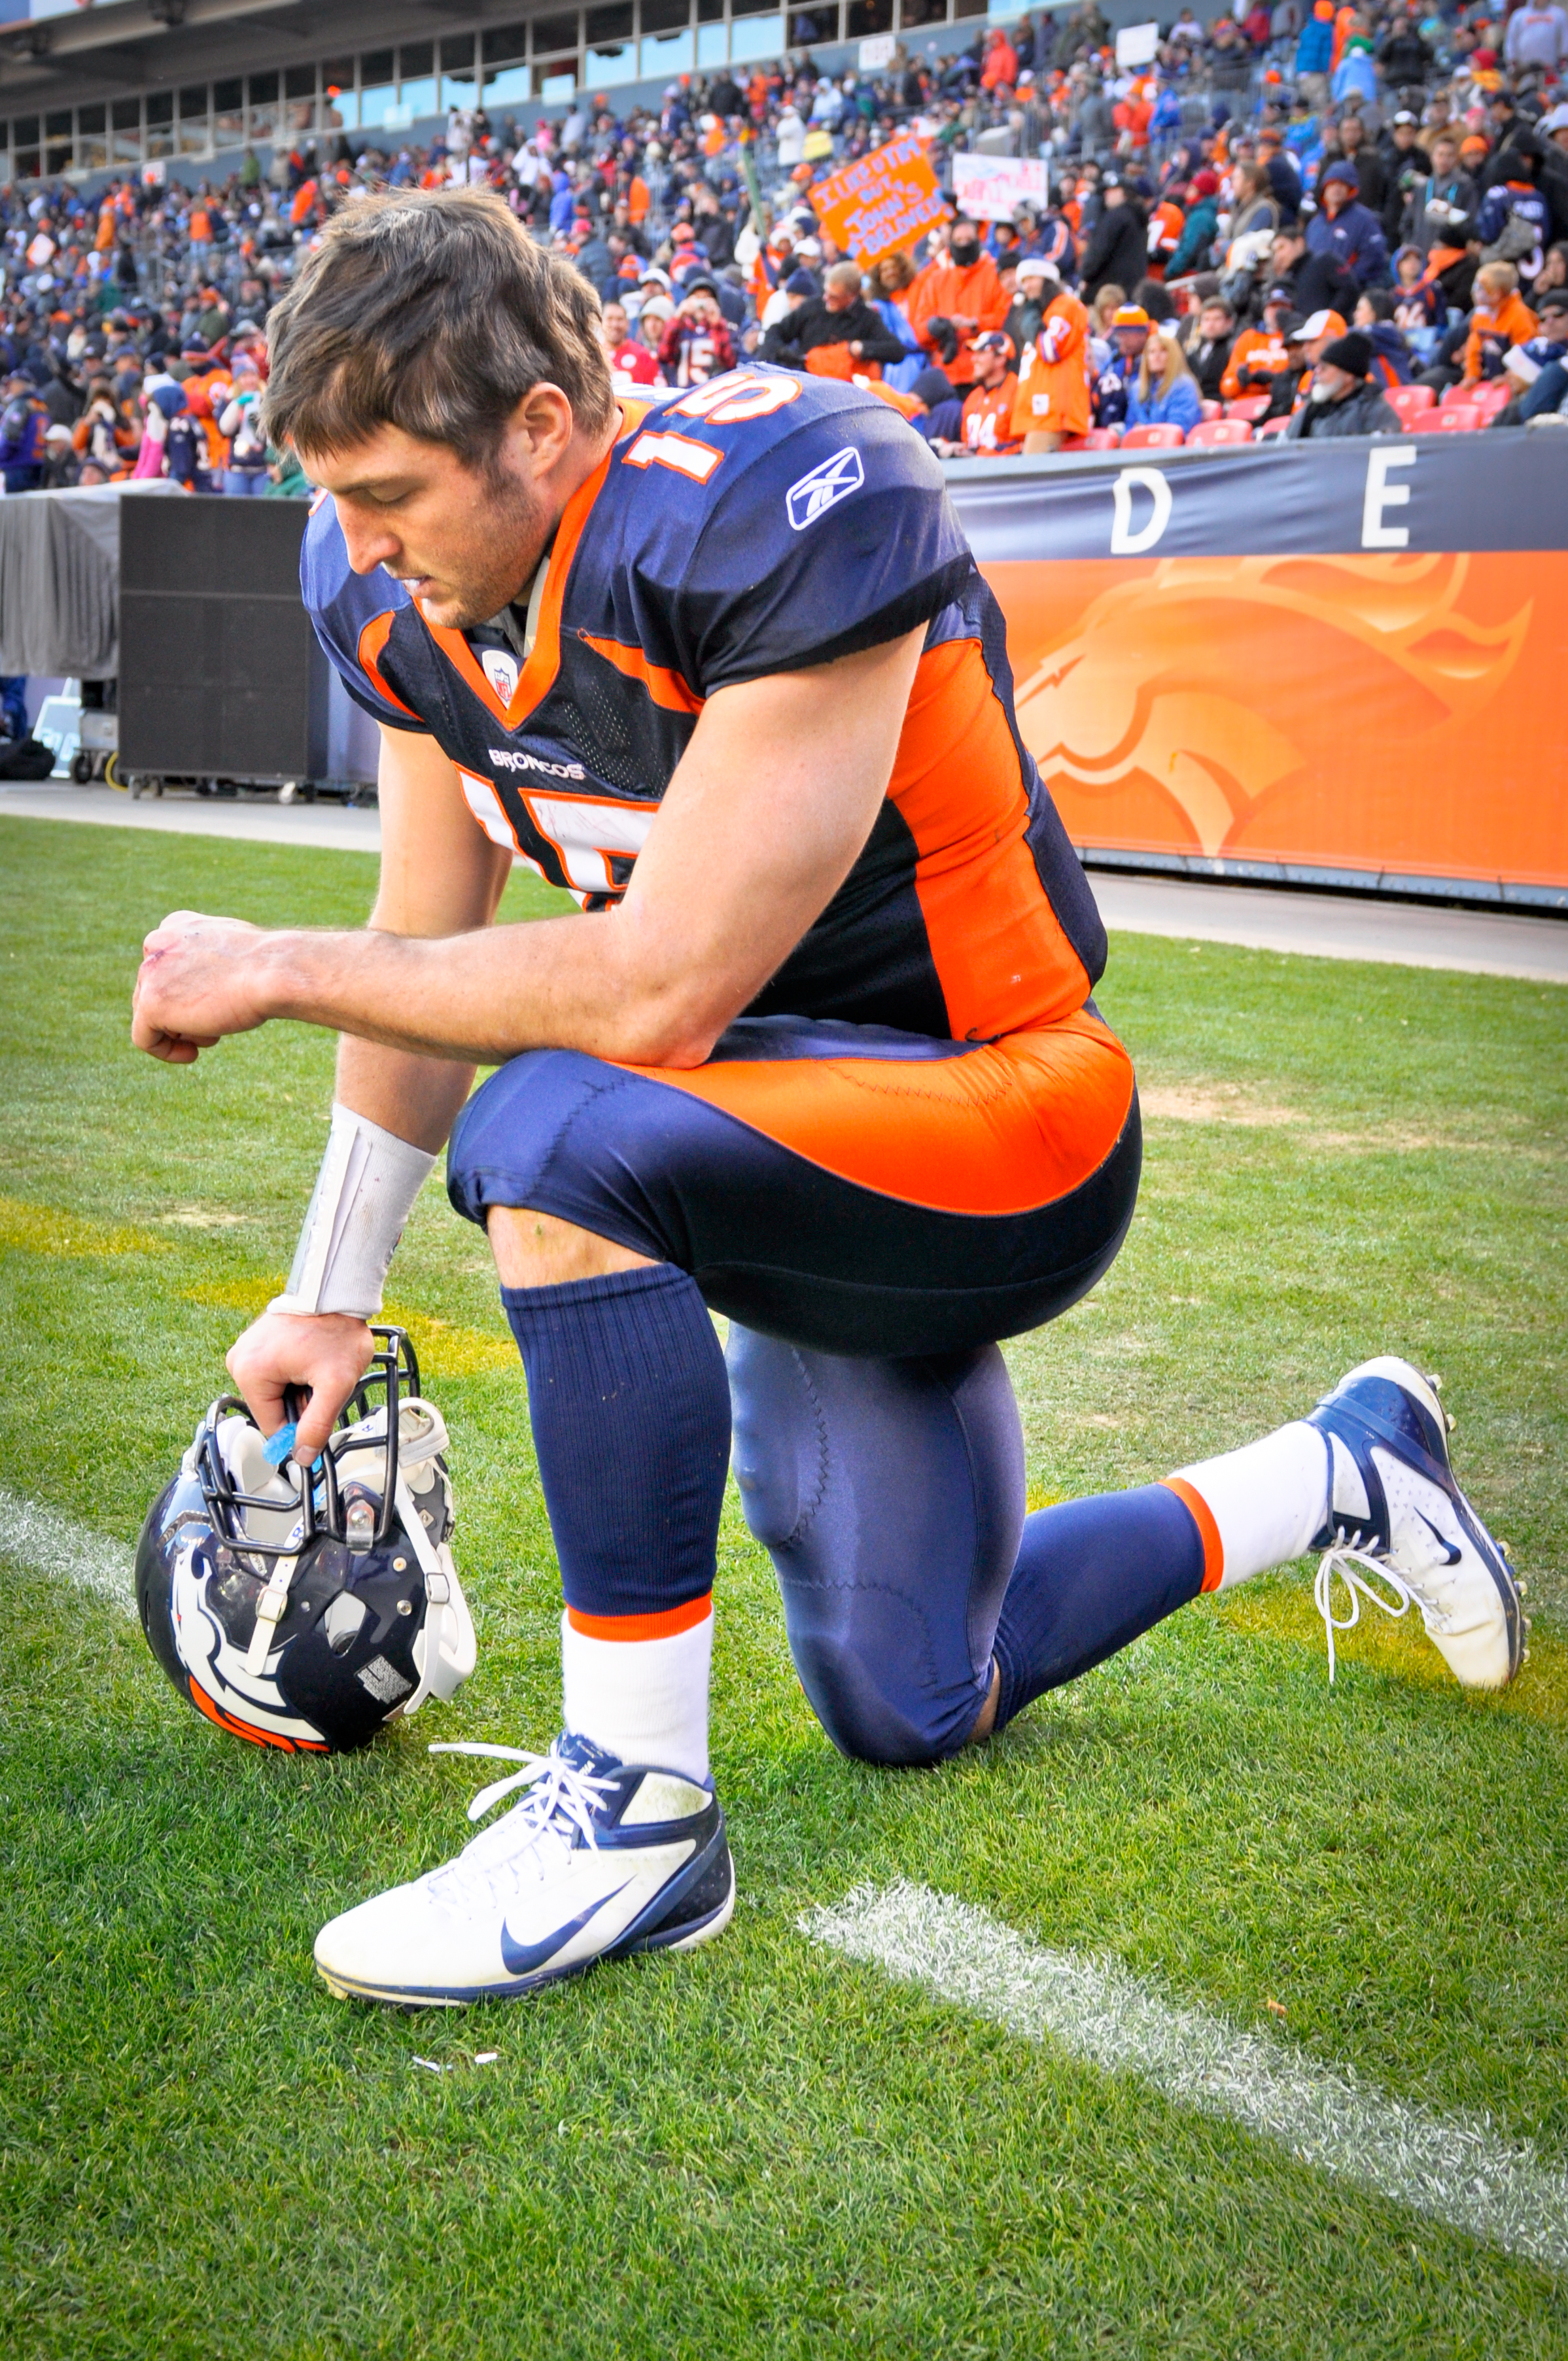 http://upload.wikimedia.org/wikipedia/commons/2/2a/Tim_Tebow_Tebowing.jpg